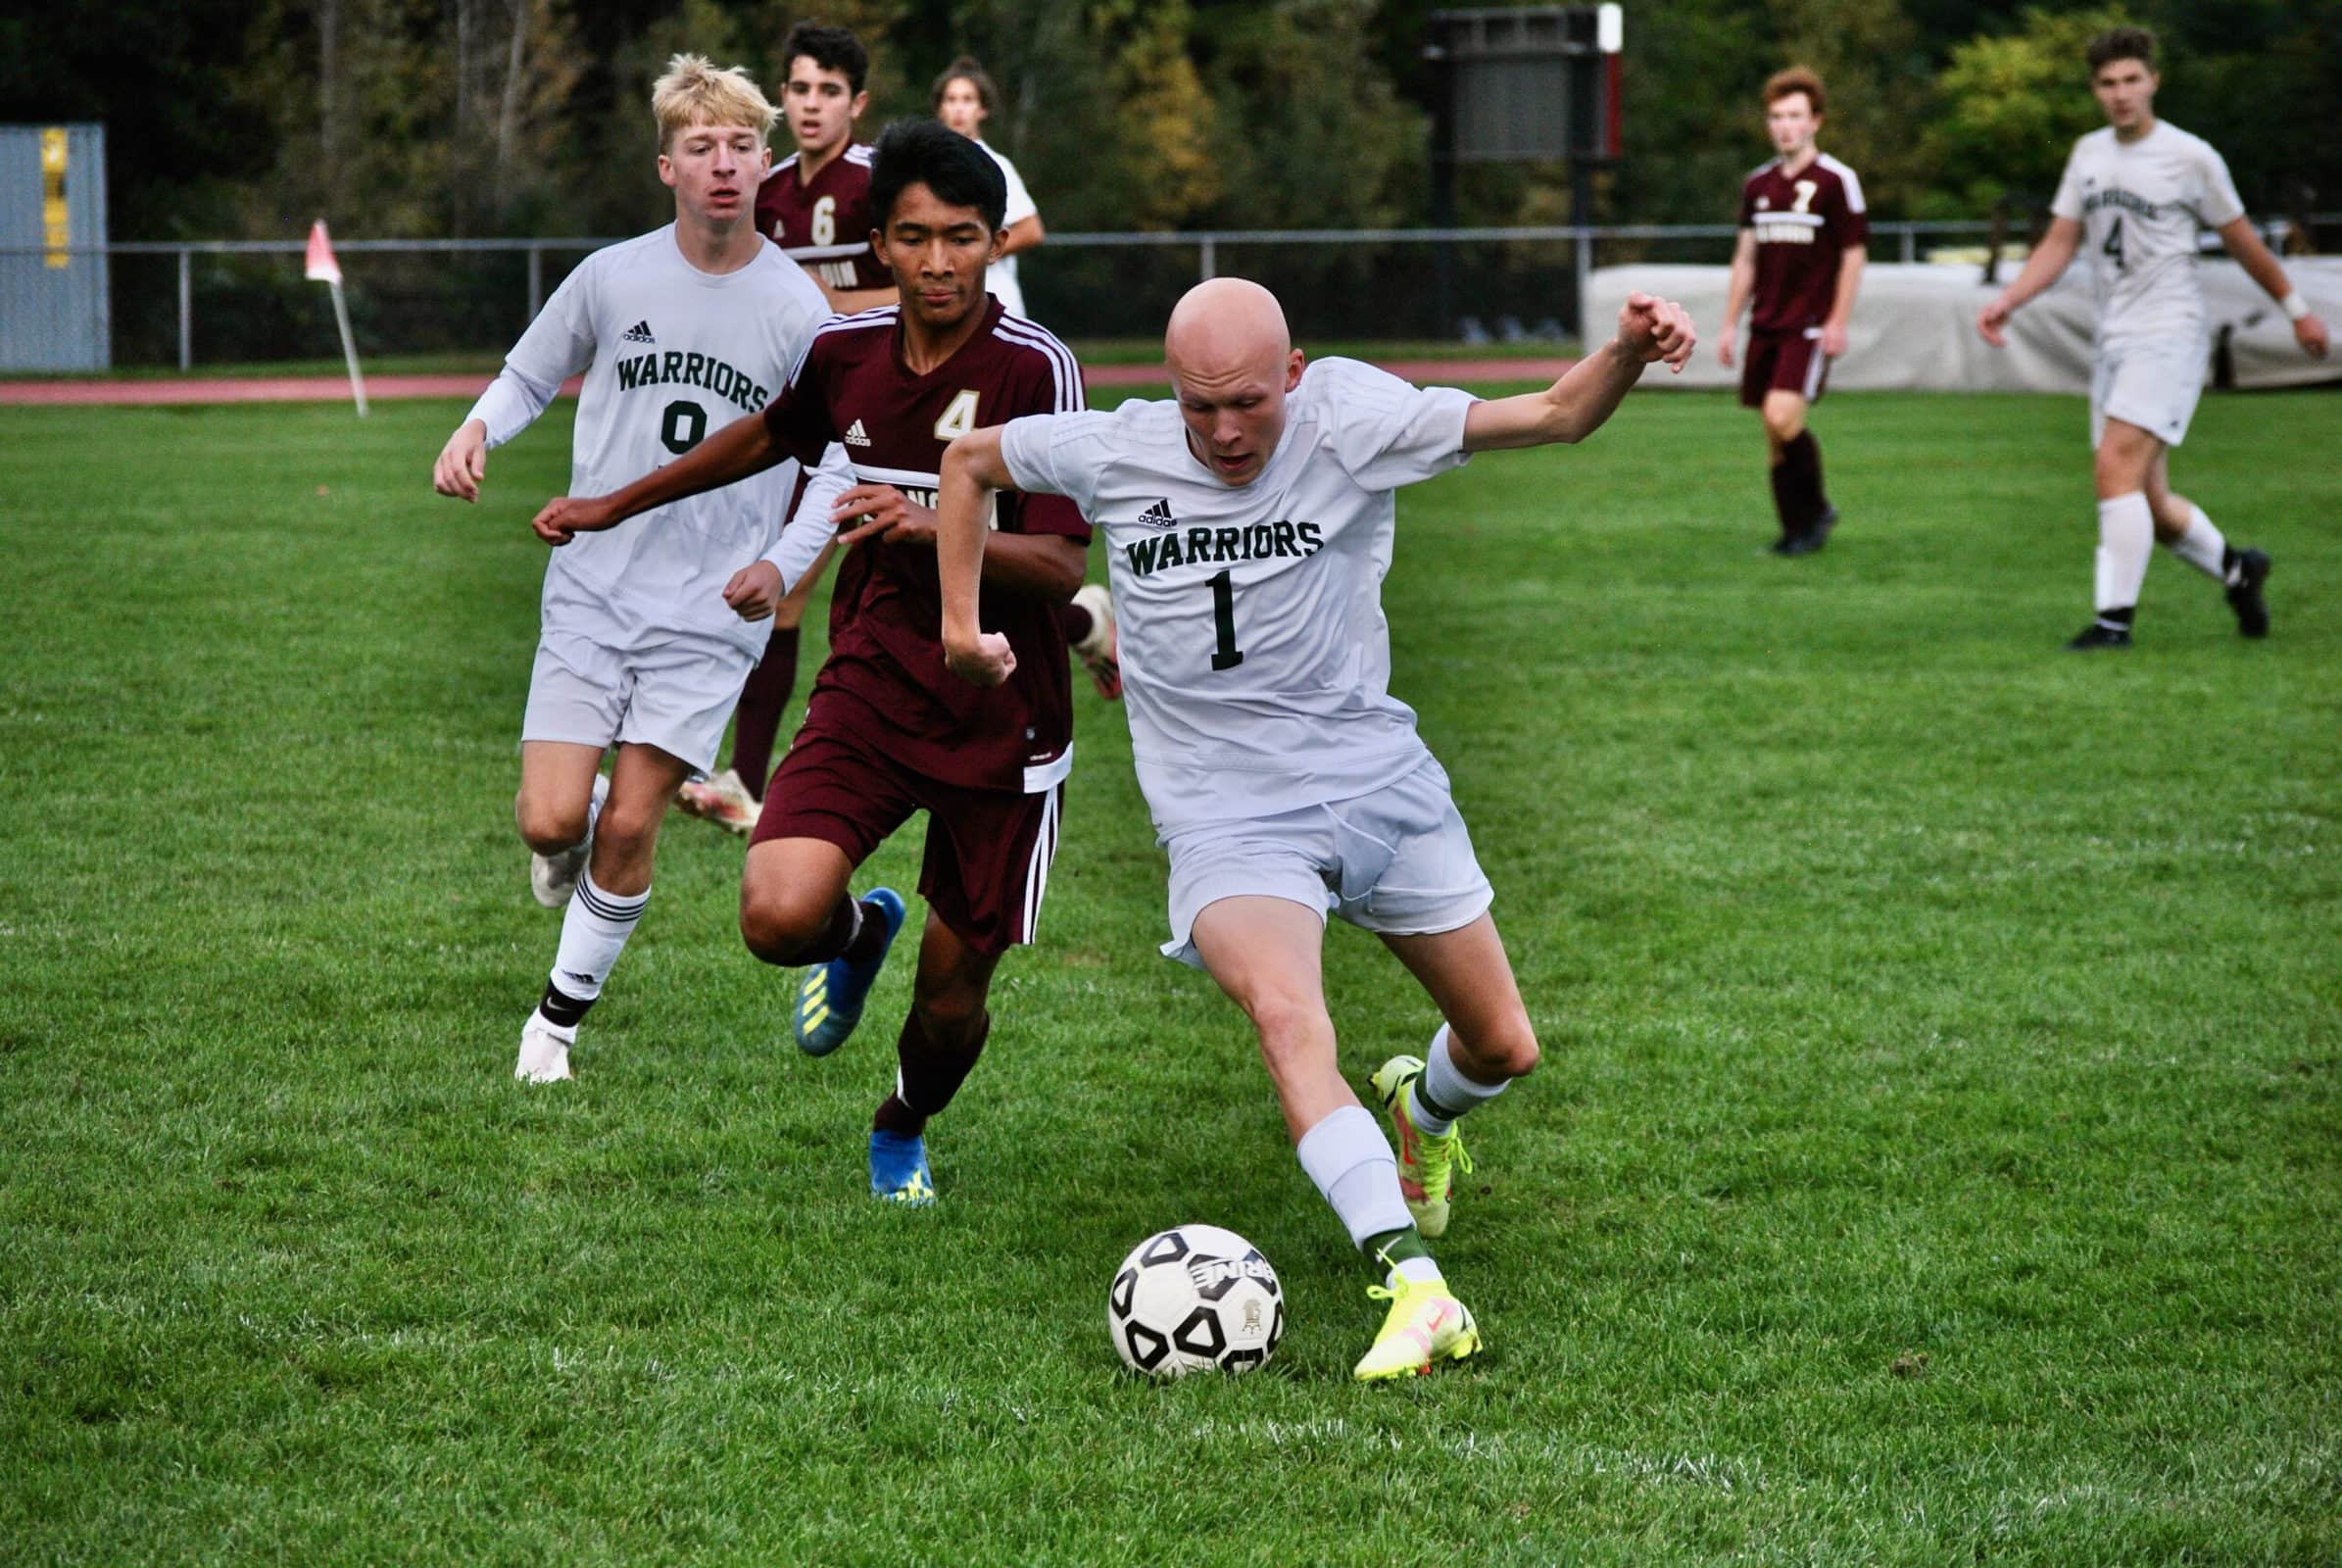 Algonquin players give chase as Tantasqua's Owen O'Brien dribbles upfield.